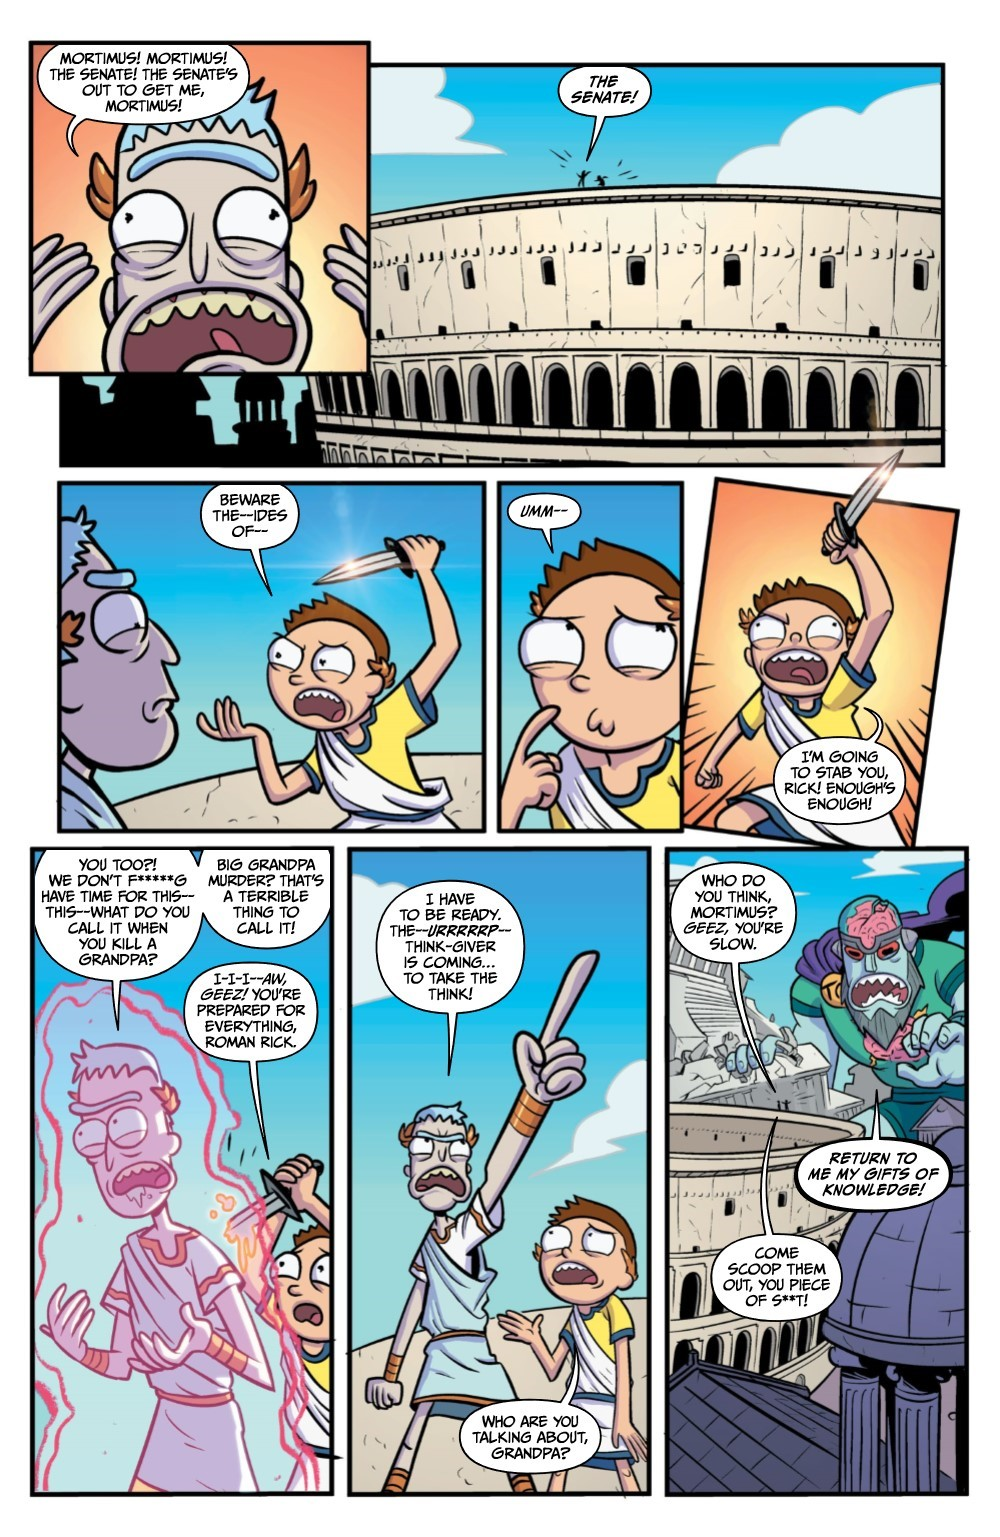 RM-RNH-2-REFERENCE-04 ComicList Previews: RICK AND MORTY RICK'S NEW HAT #2